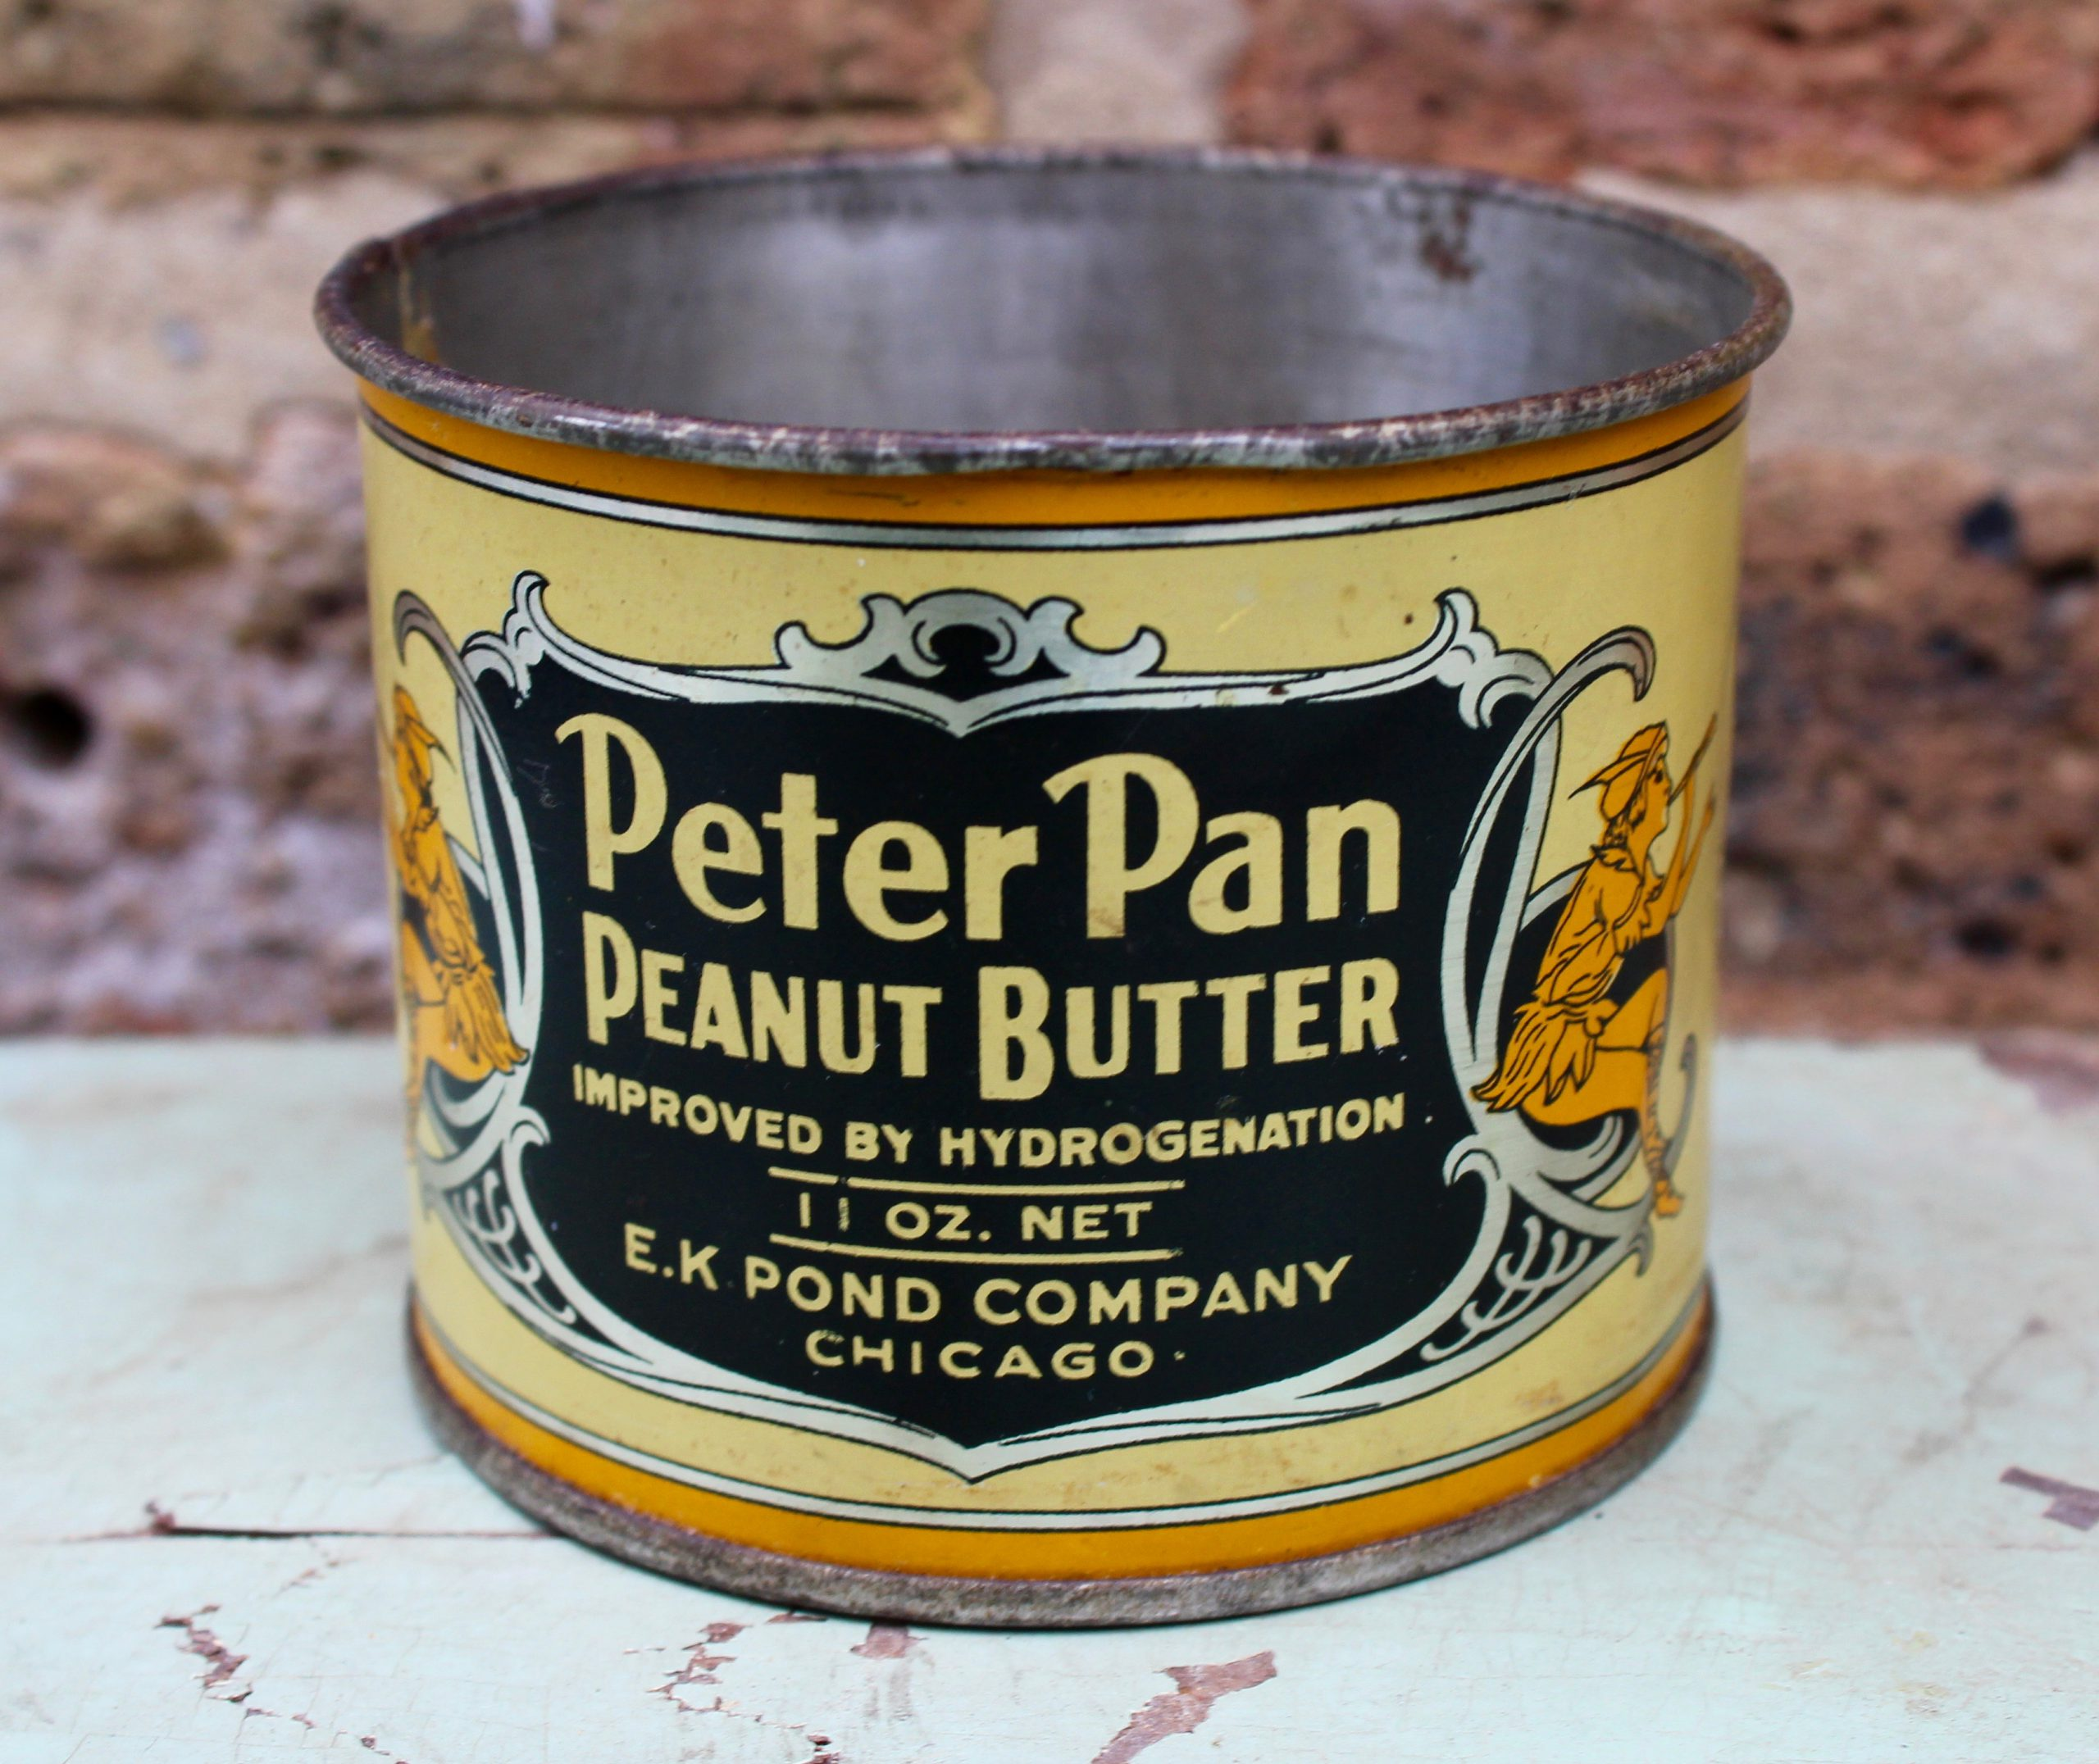 Peter Pan Peanut Butter History - E. K. Pond